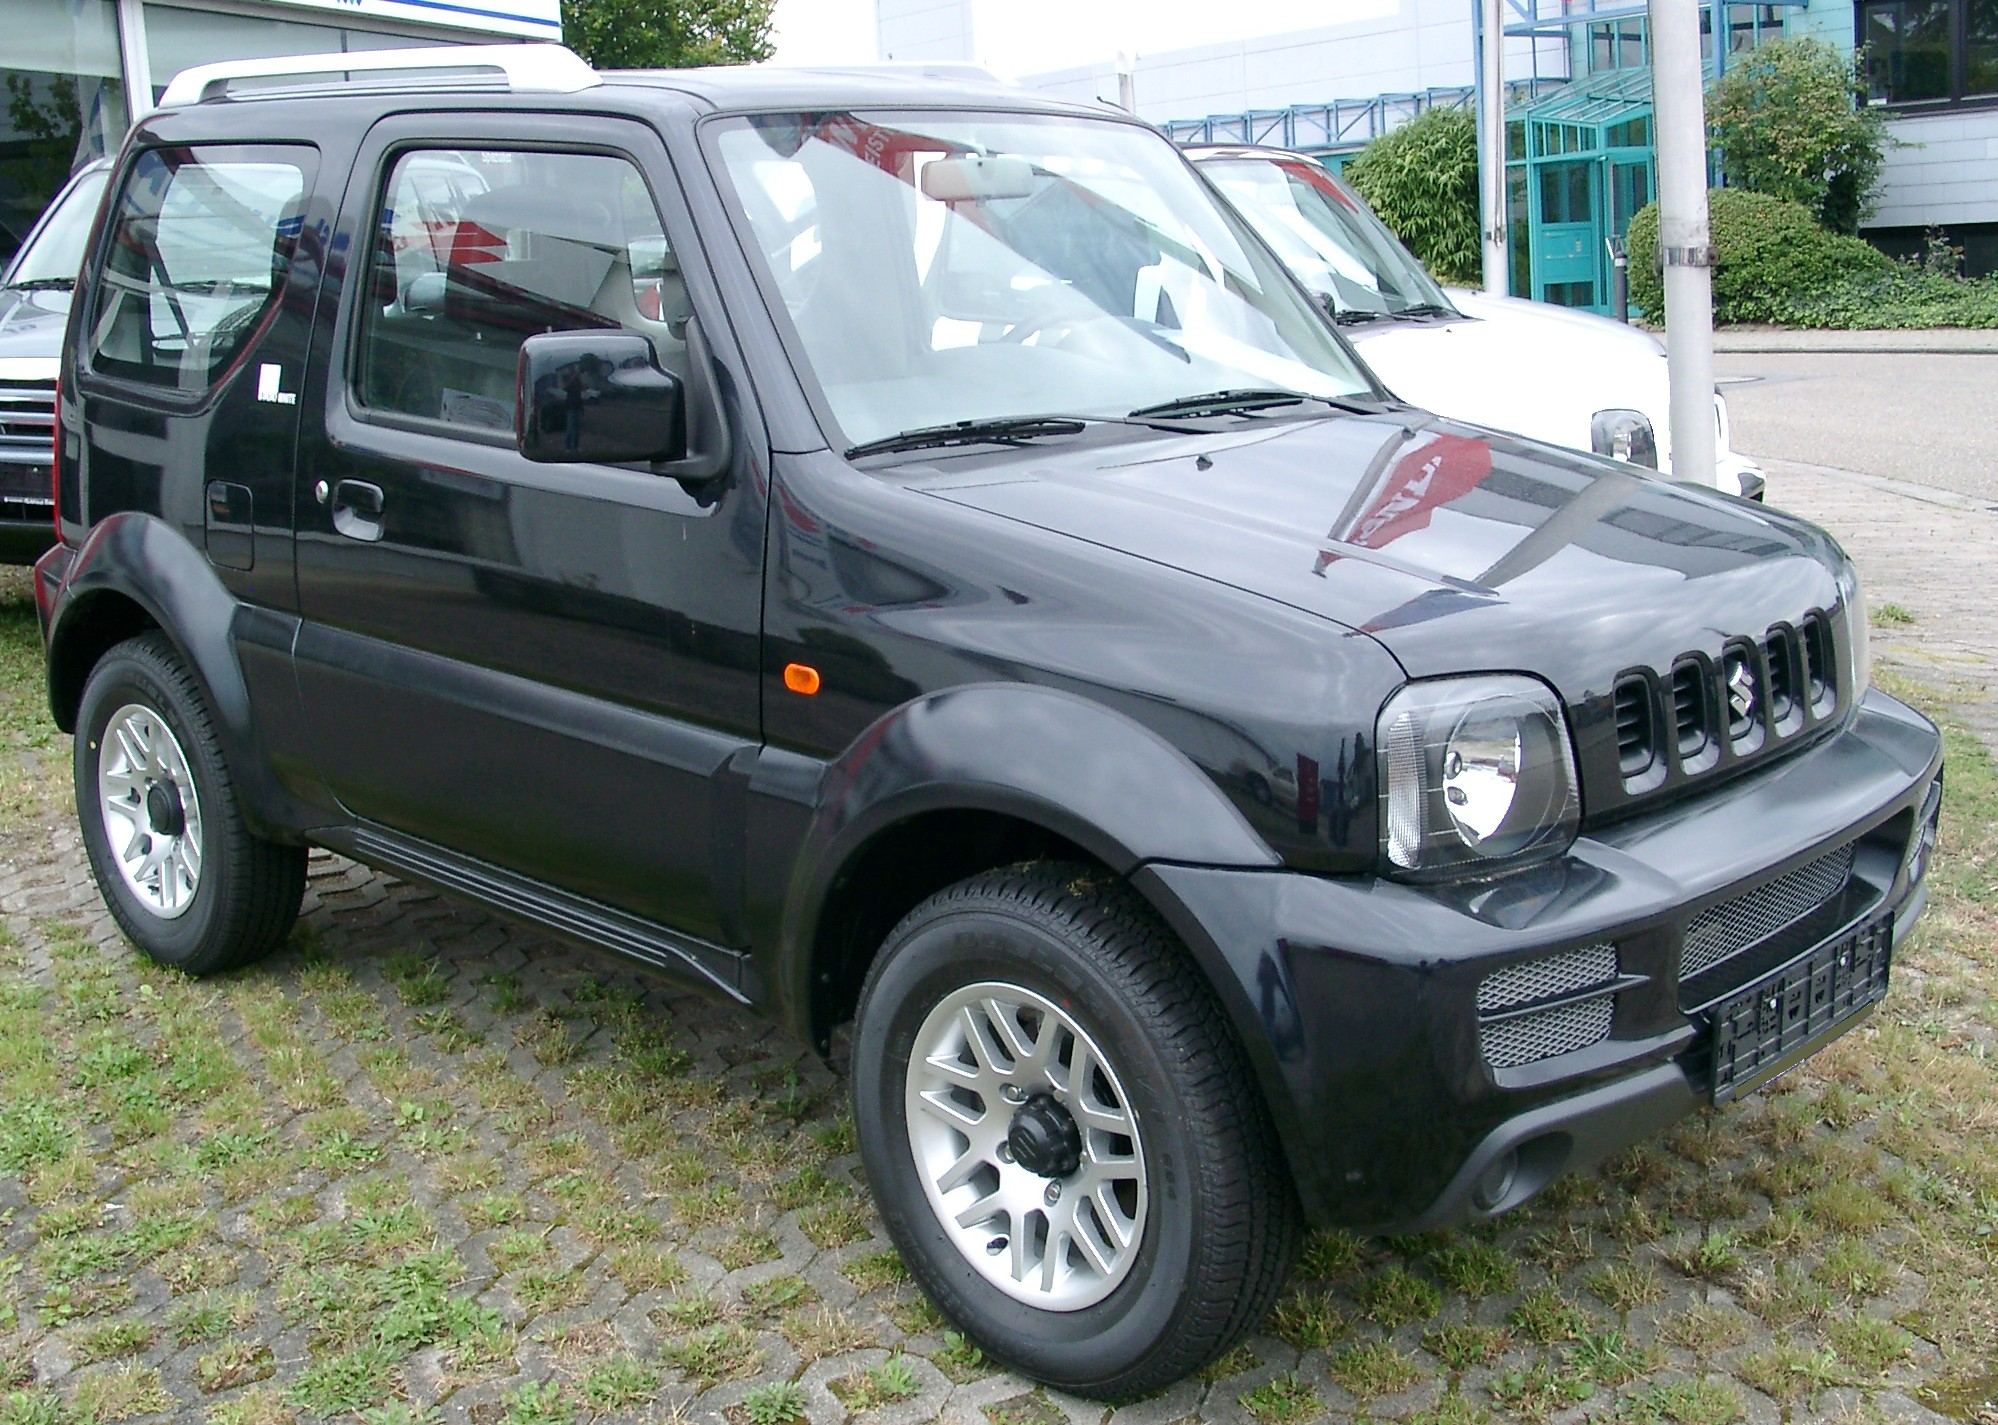 Suzuki Jimny - Feeling Offended On The Road #8